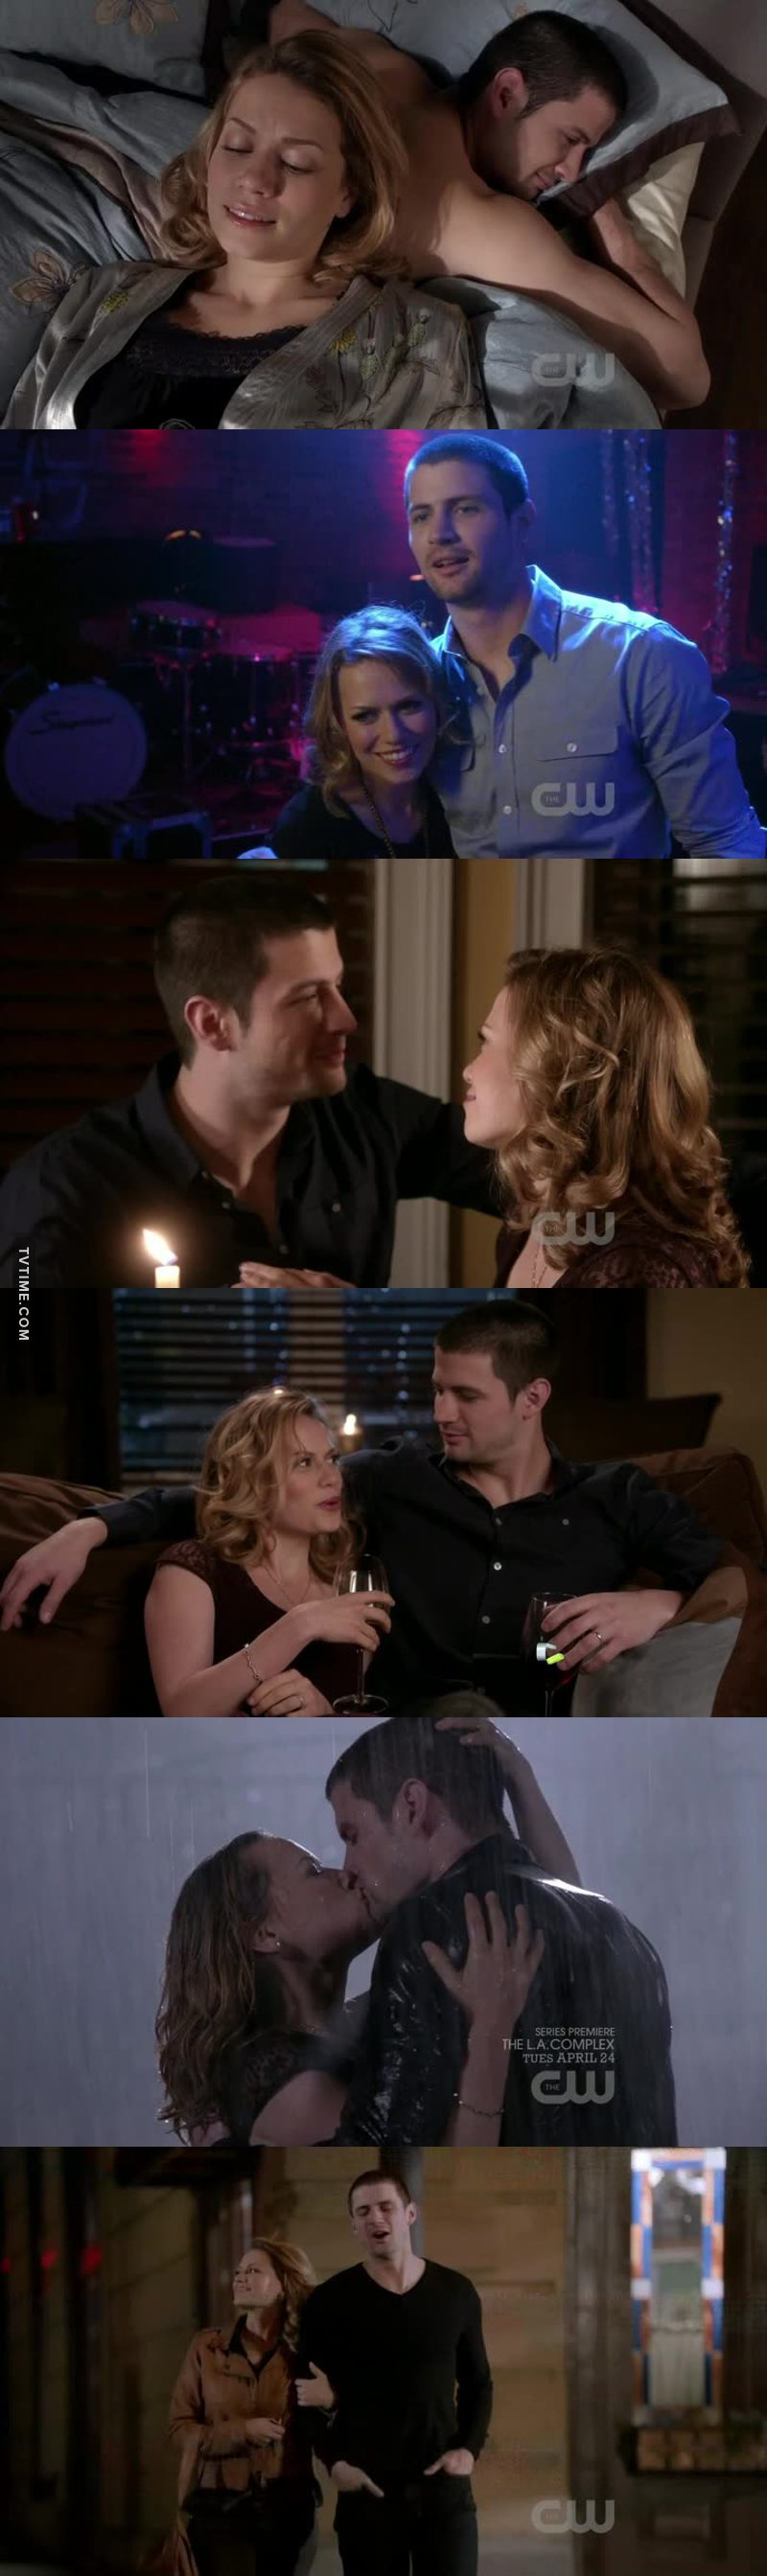 After nine seasons, I can say that Naley is the best couple. Haley turned Nathan into a good person. They've been through a lot but have always come back stronger. Nathan and Haley will always be my OTP. NALEY ALWAYS AND FOREVER ❤️